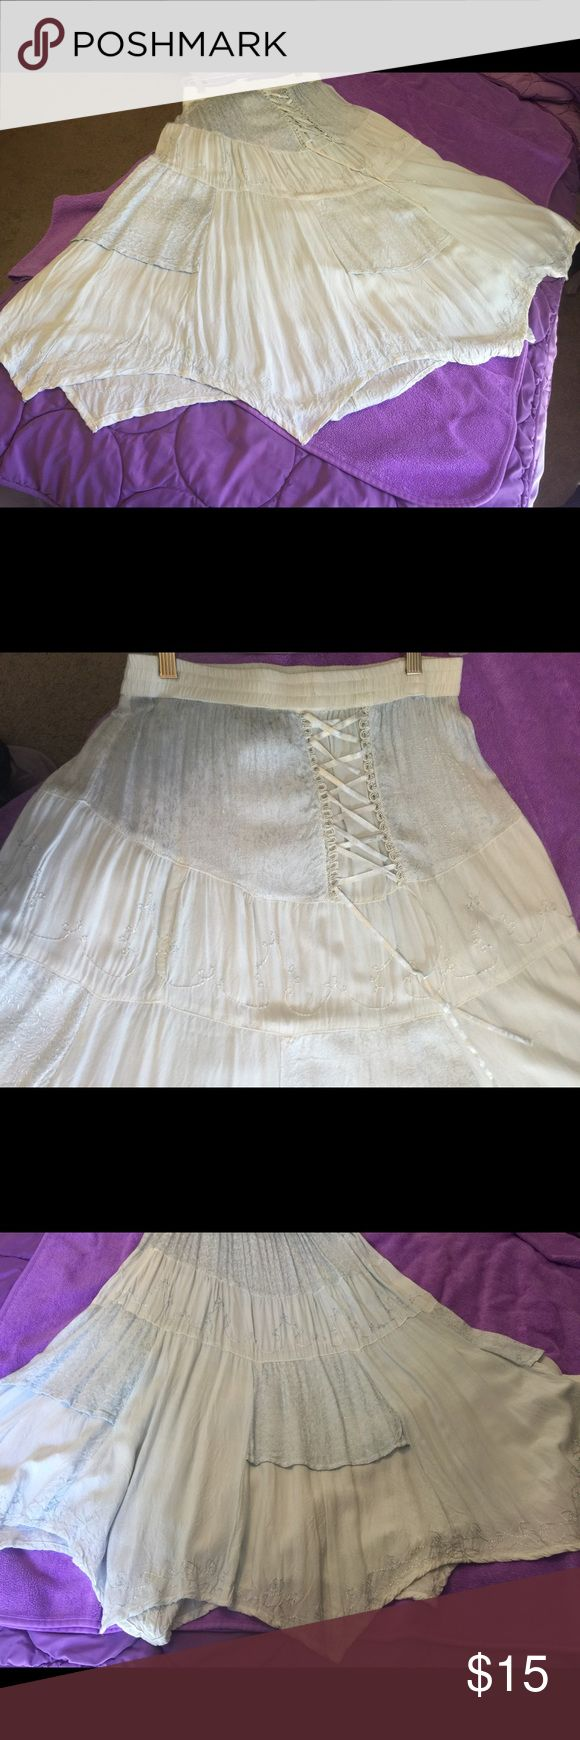 Light Blue Sheer Long Summer Skirt Local made renaissance inspired skirt. Has lace up in the front. Sheer lace panels. Perfect condition. Raja Skirts Maxi